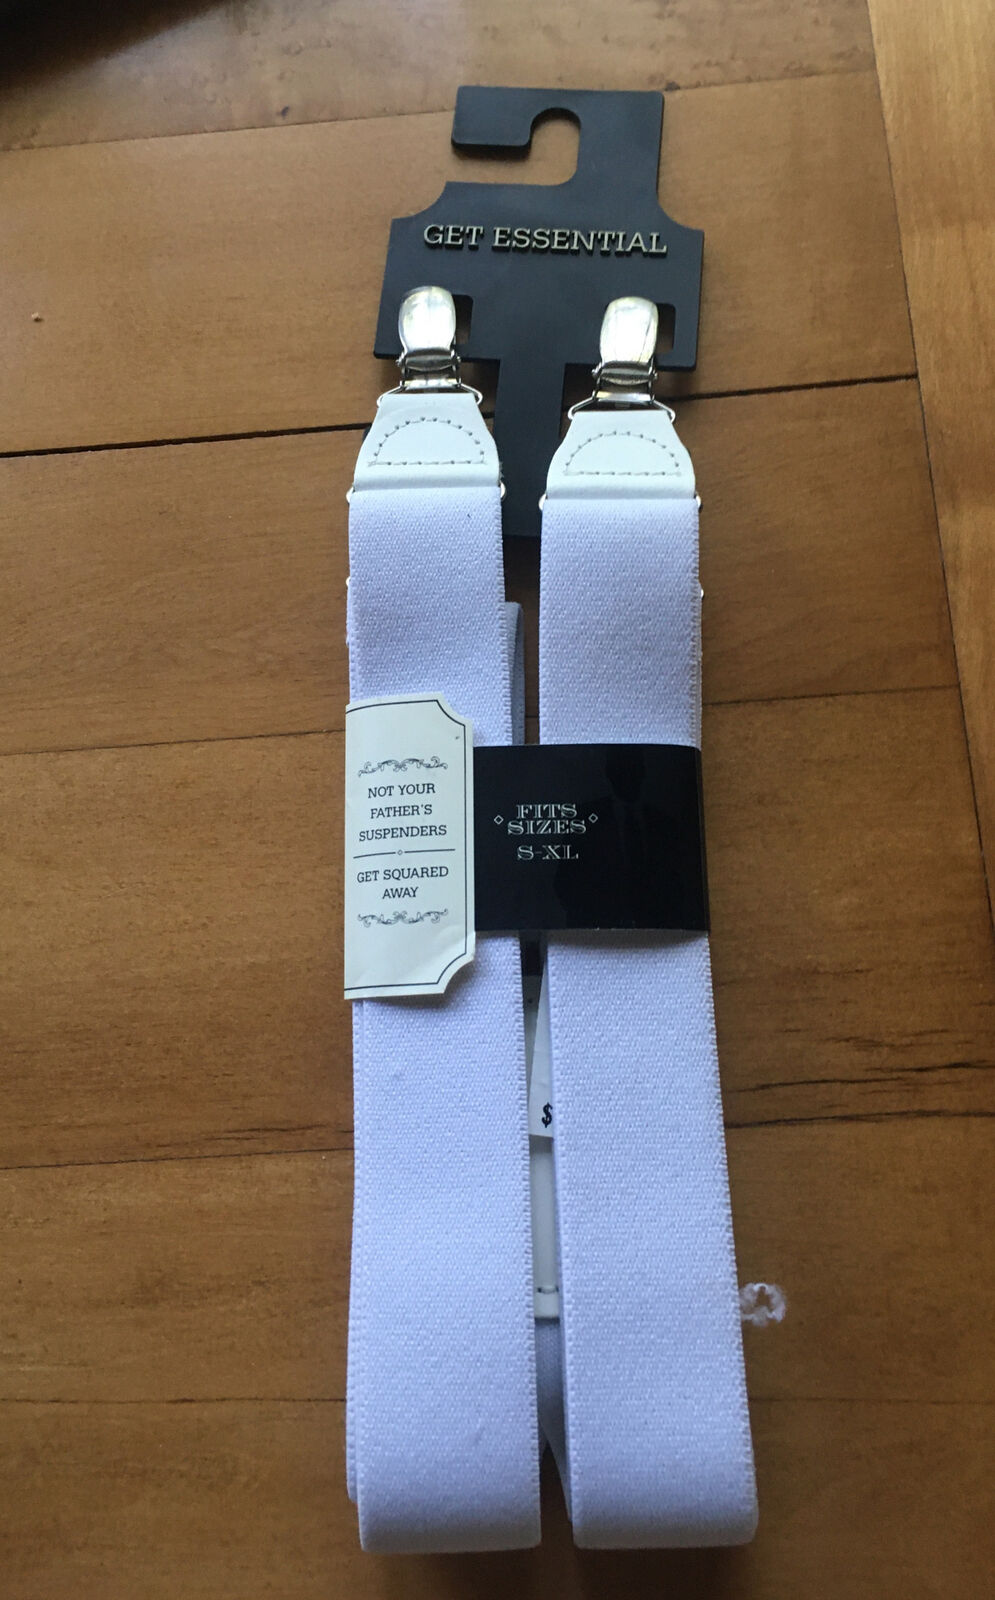 Mens White Suspenders Fits S-XL Solid Get Essential G30540 Dressy-or-Casual NWT